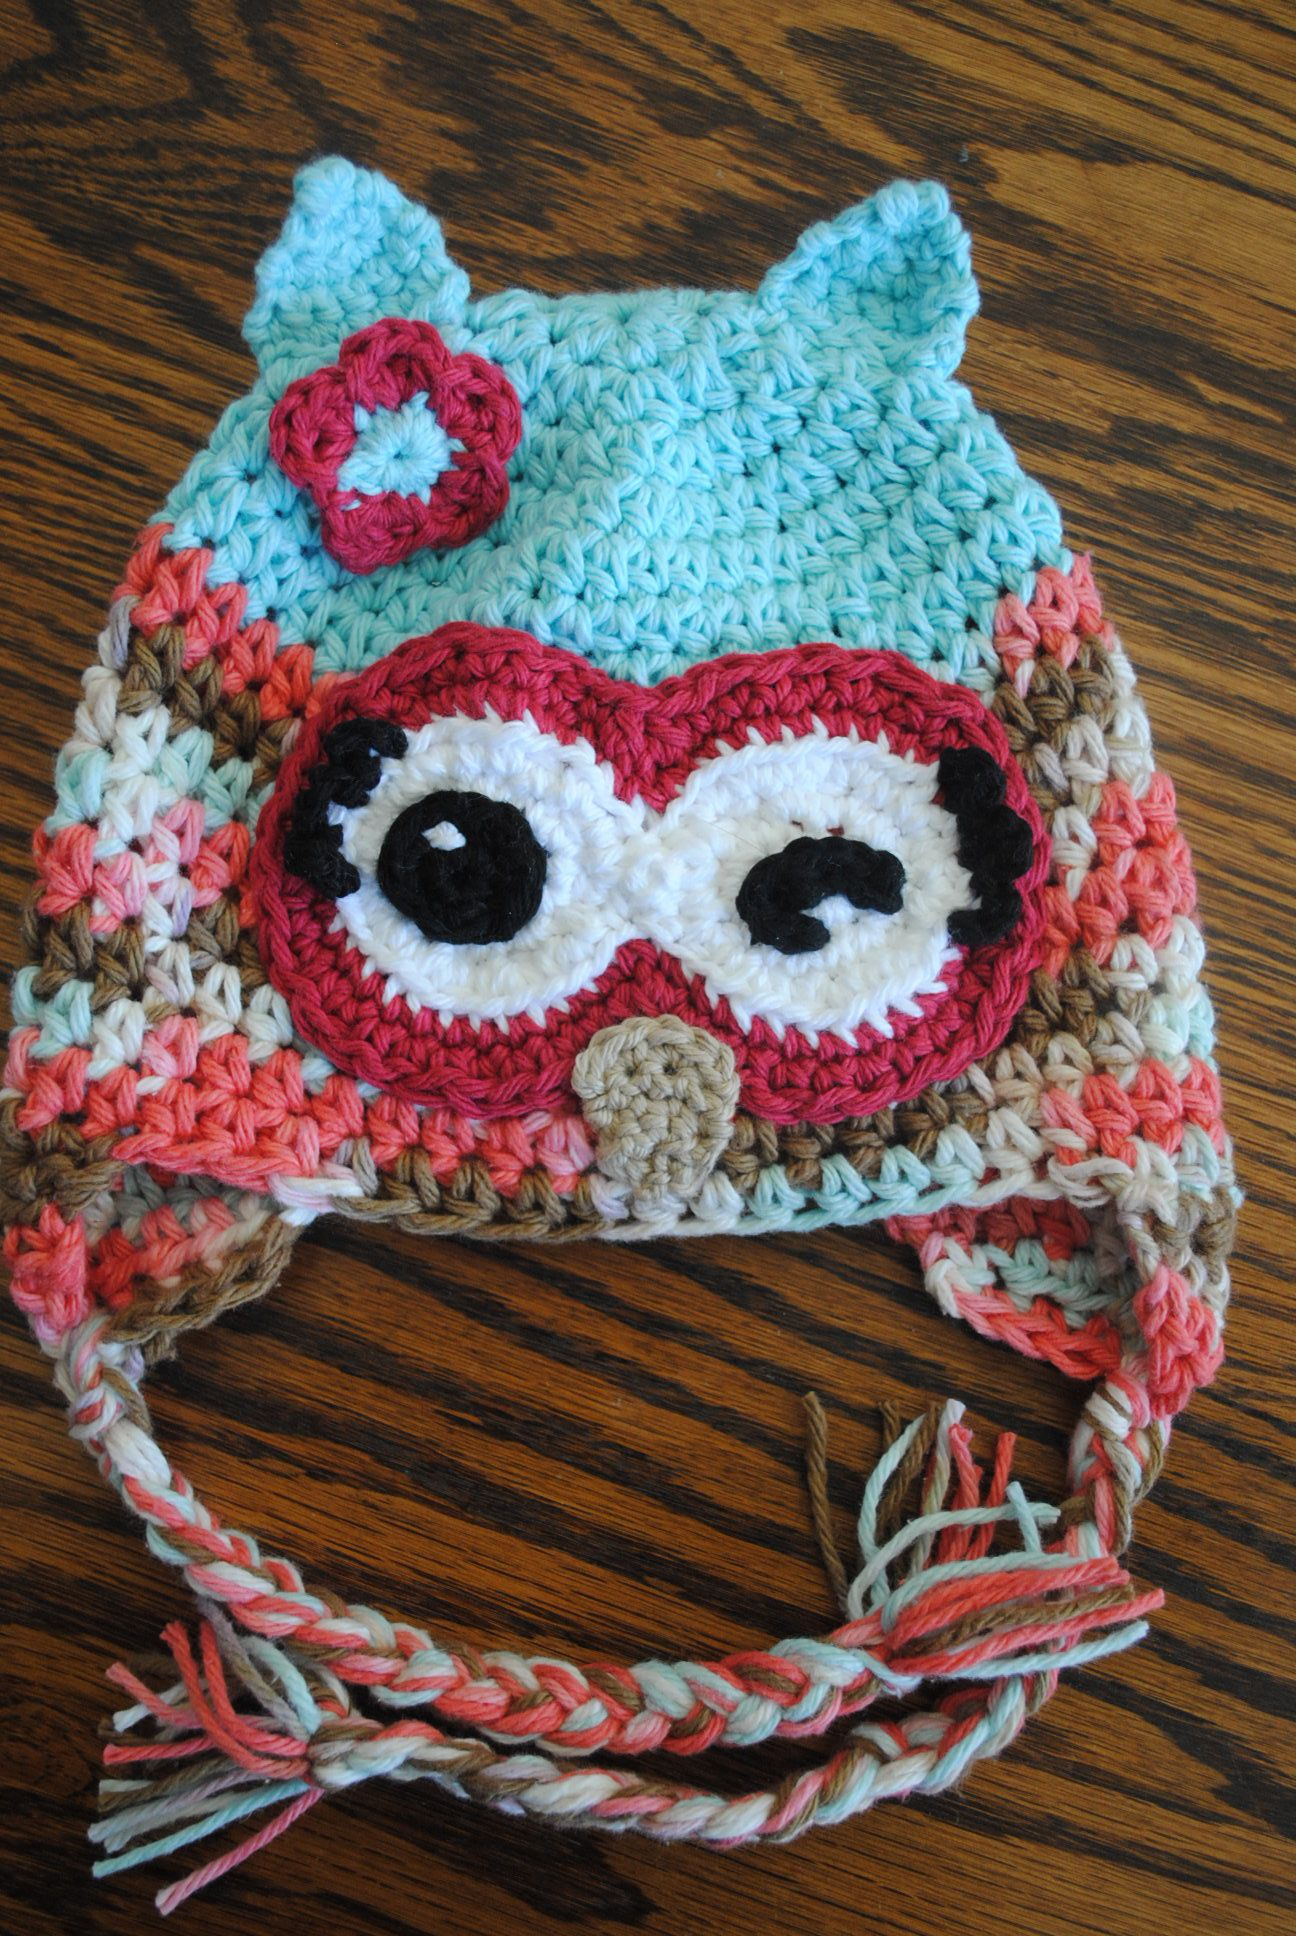 Free crochet owl hat pattern winky winky the owl crocheting free crochet owl hat pattern winky winky the owl bankloansurffo Image collections